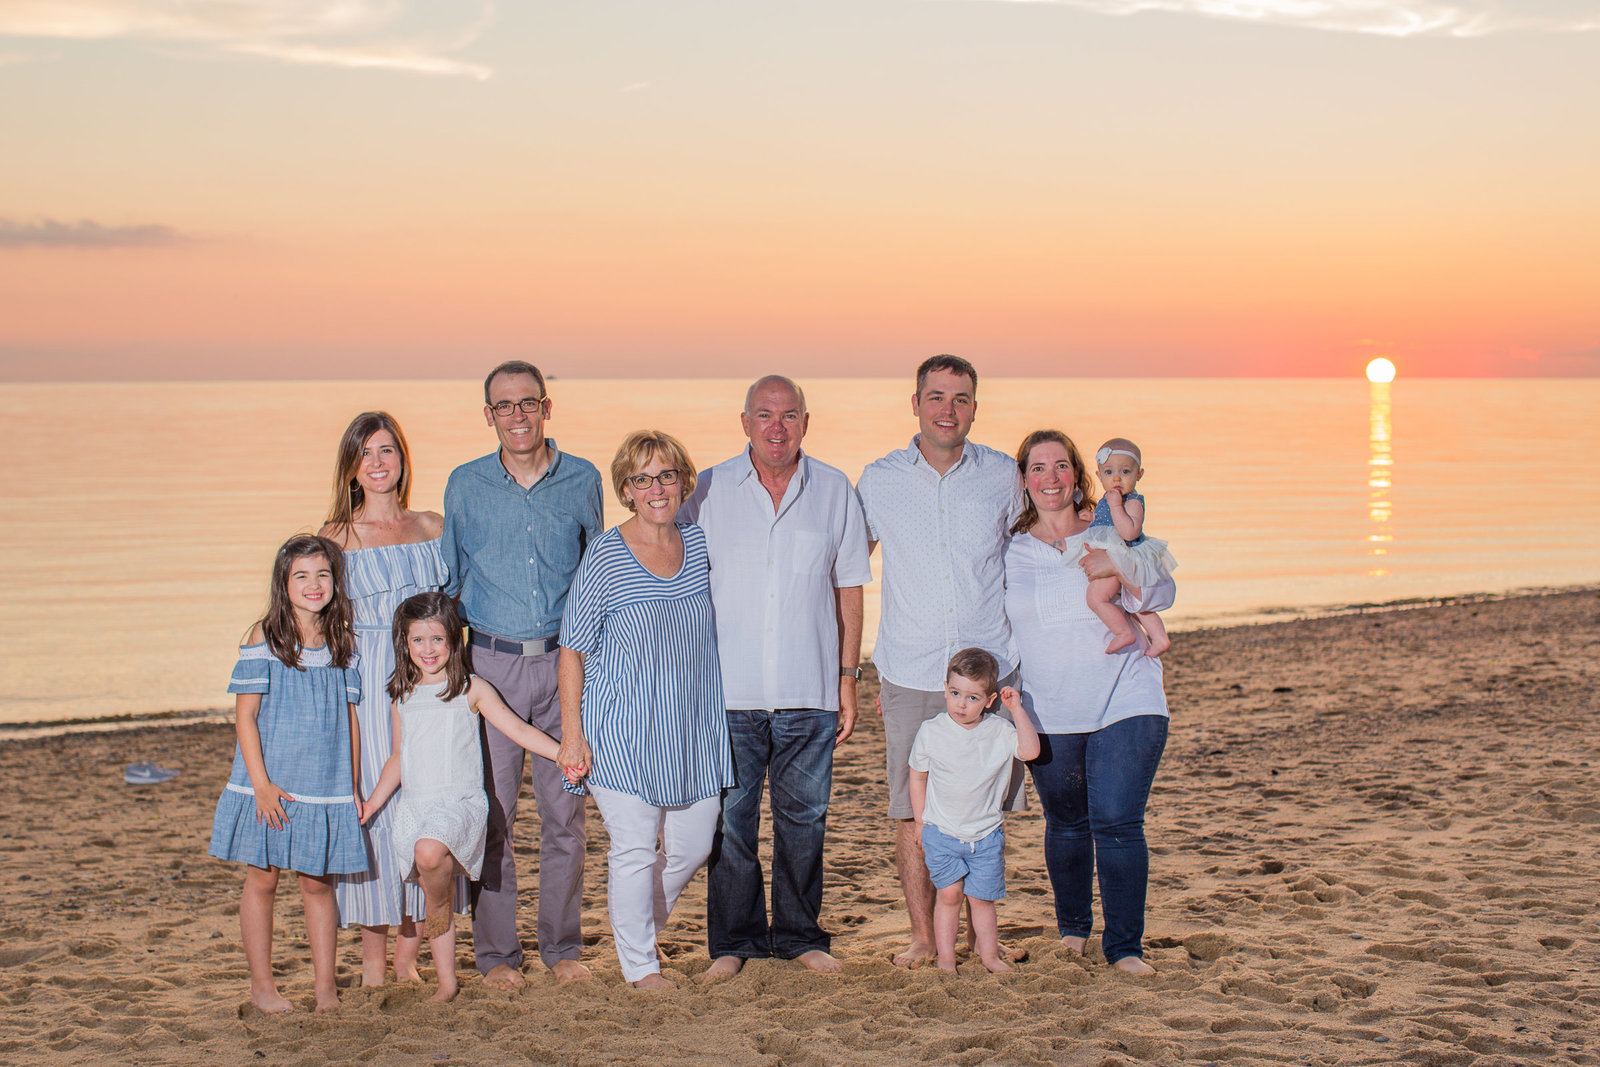 Herring Cove Beach_ Cape Cod Family Portraits_MichelleKayePhotography-12863